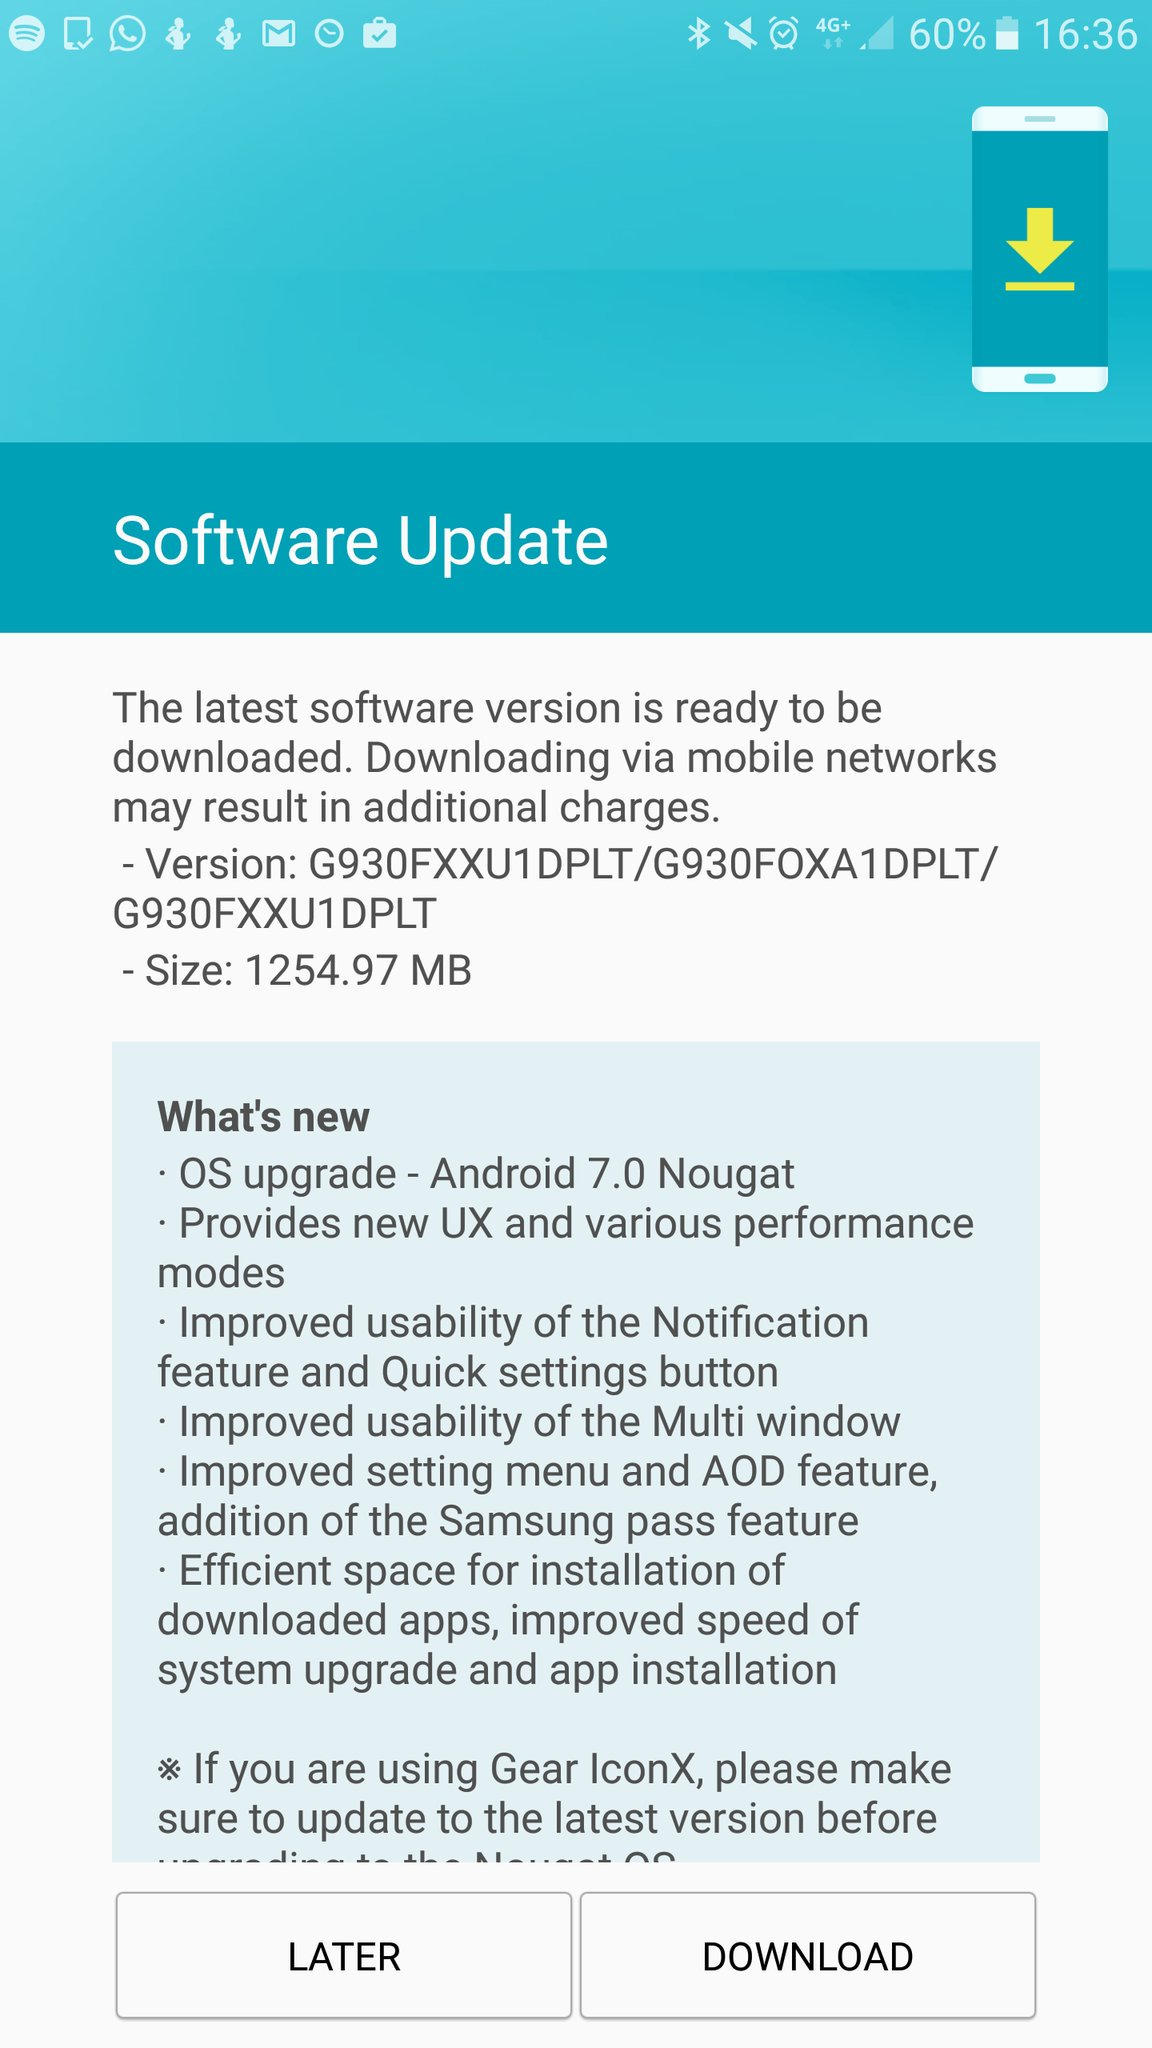 Samsung Galaxy S7 and S7 Edge Andropid 7.0 Nougat update UK